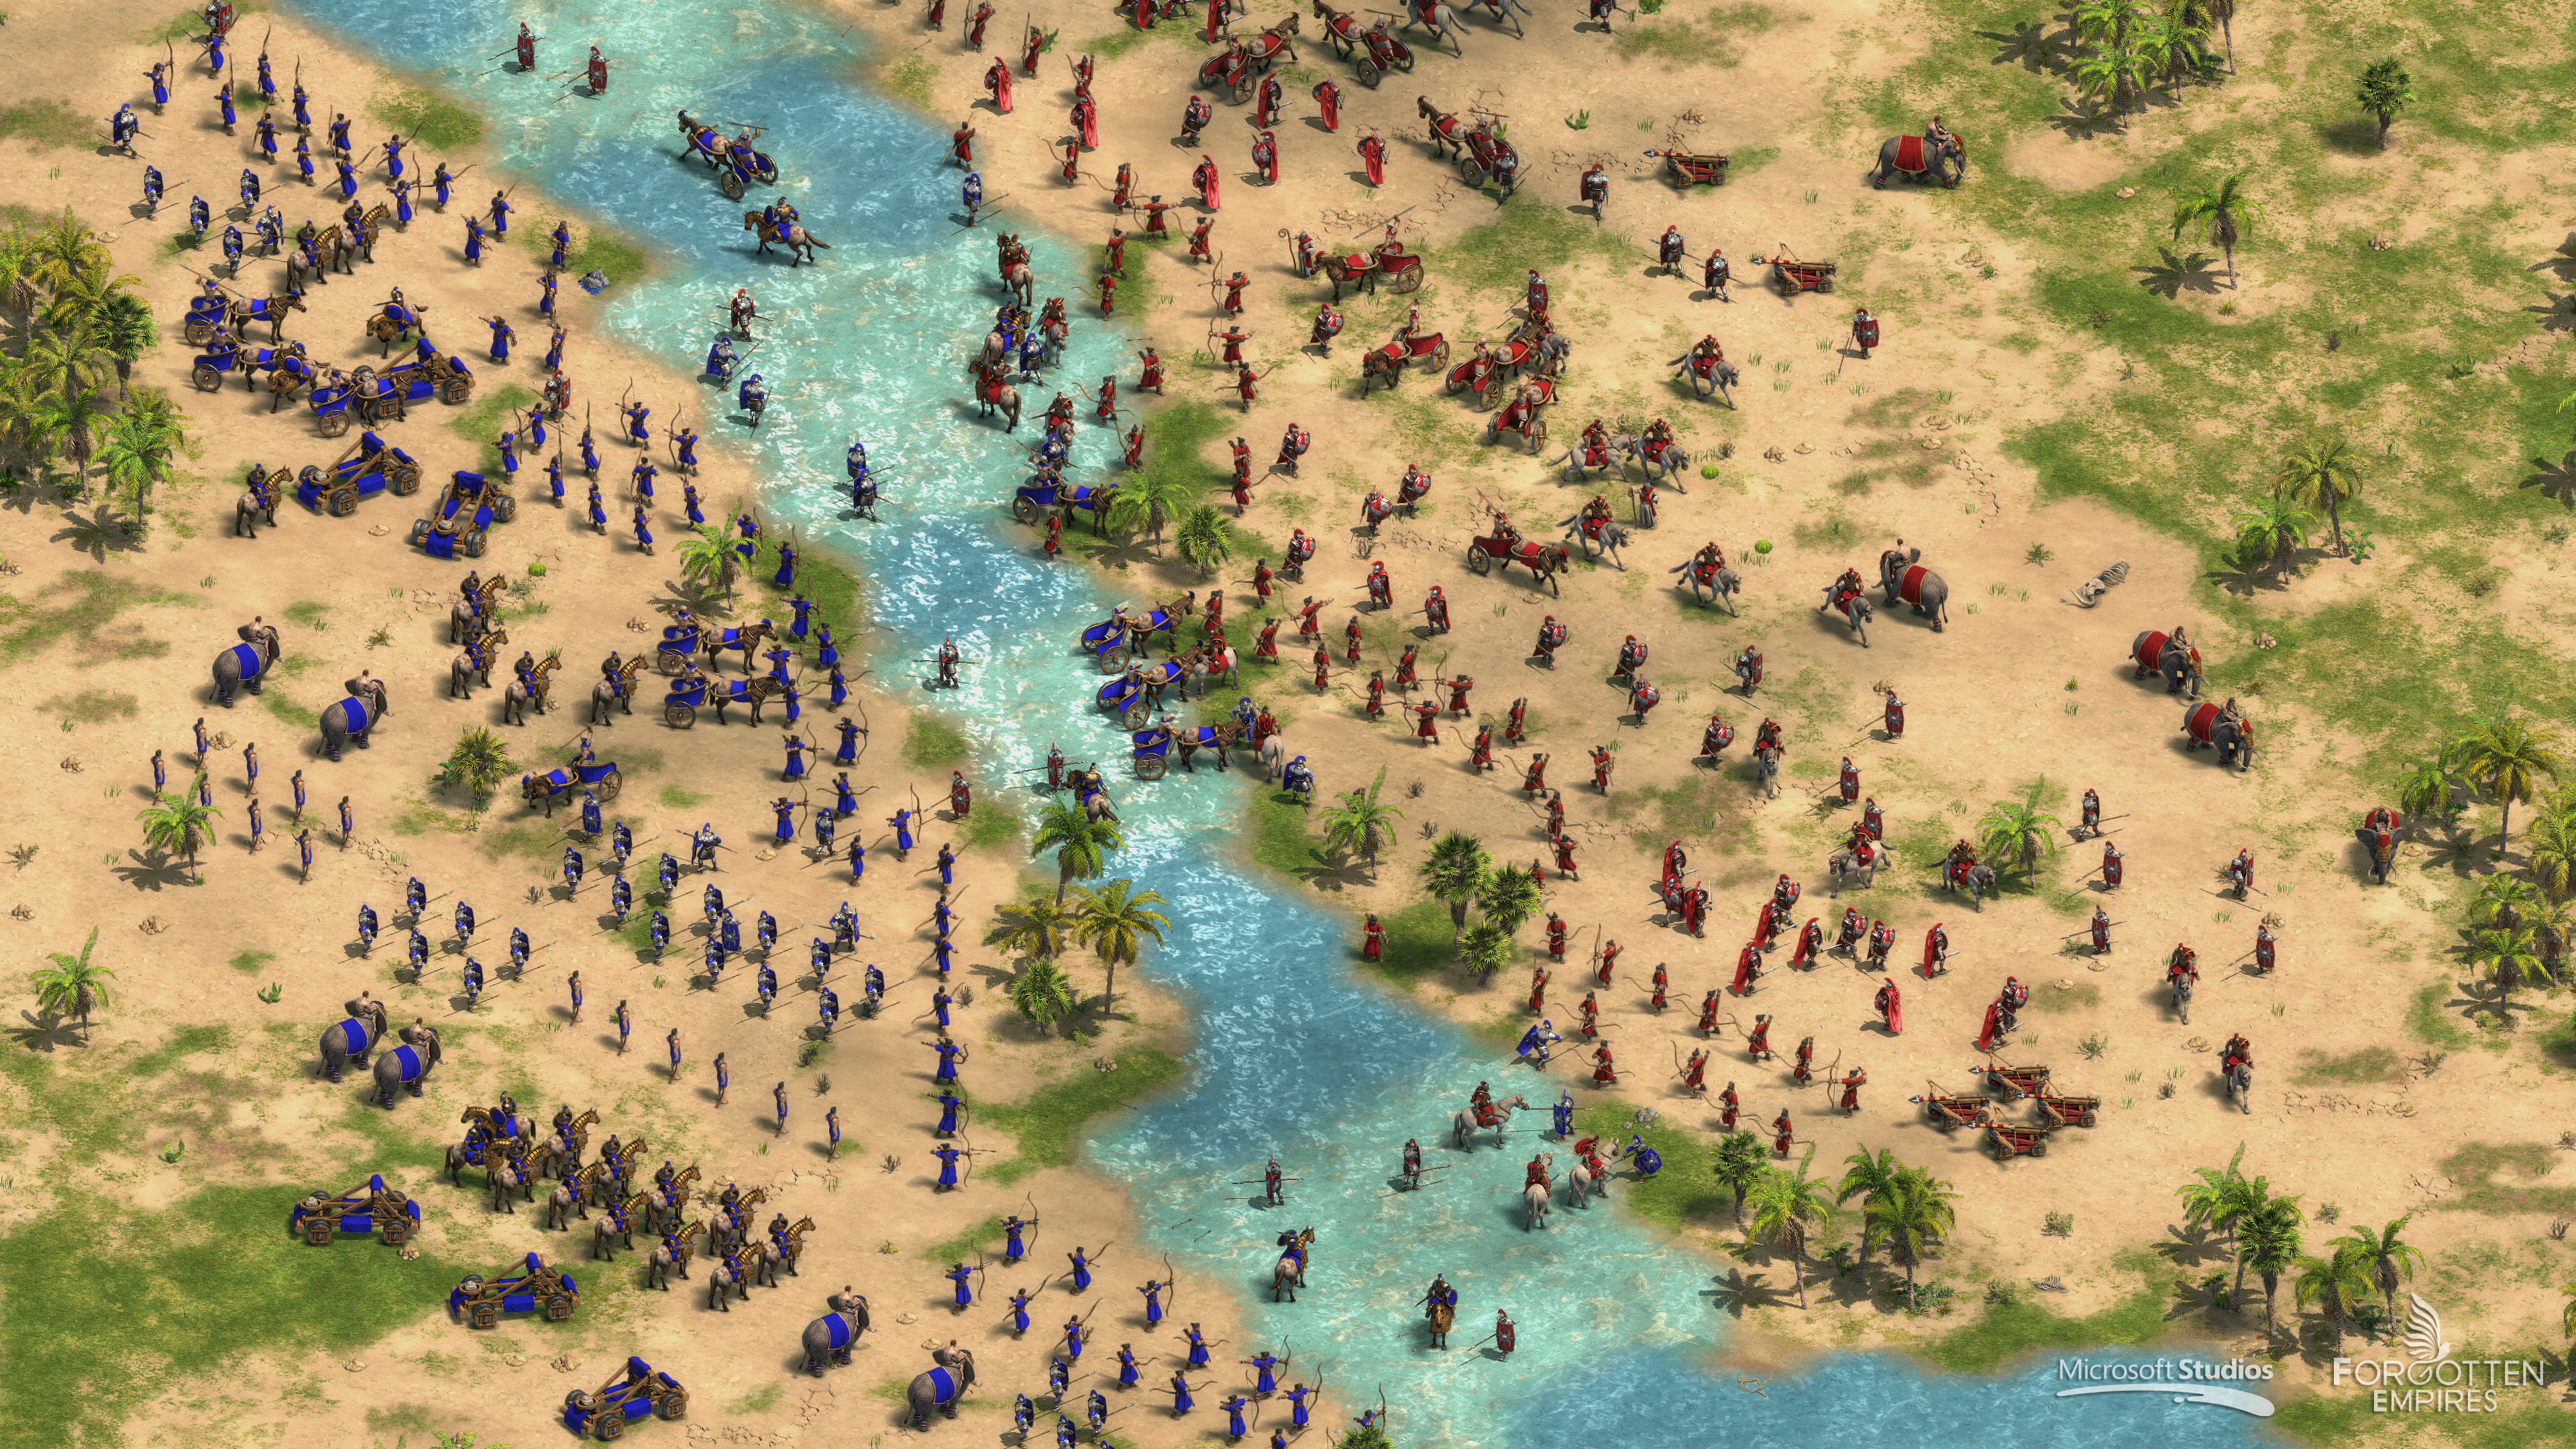 http://www.forgottenempires.net/wp-content/uploads/age_of_empires_definitive_edition_screenshot_river_encounter_.png